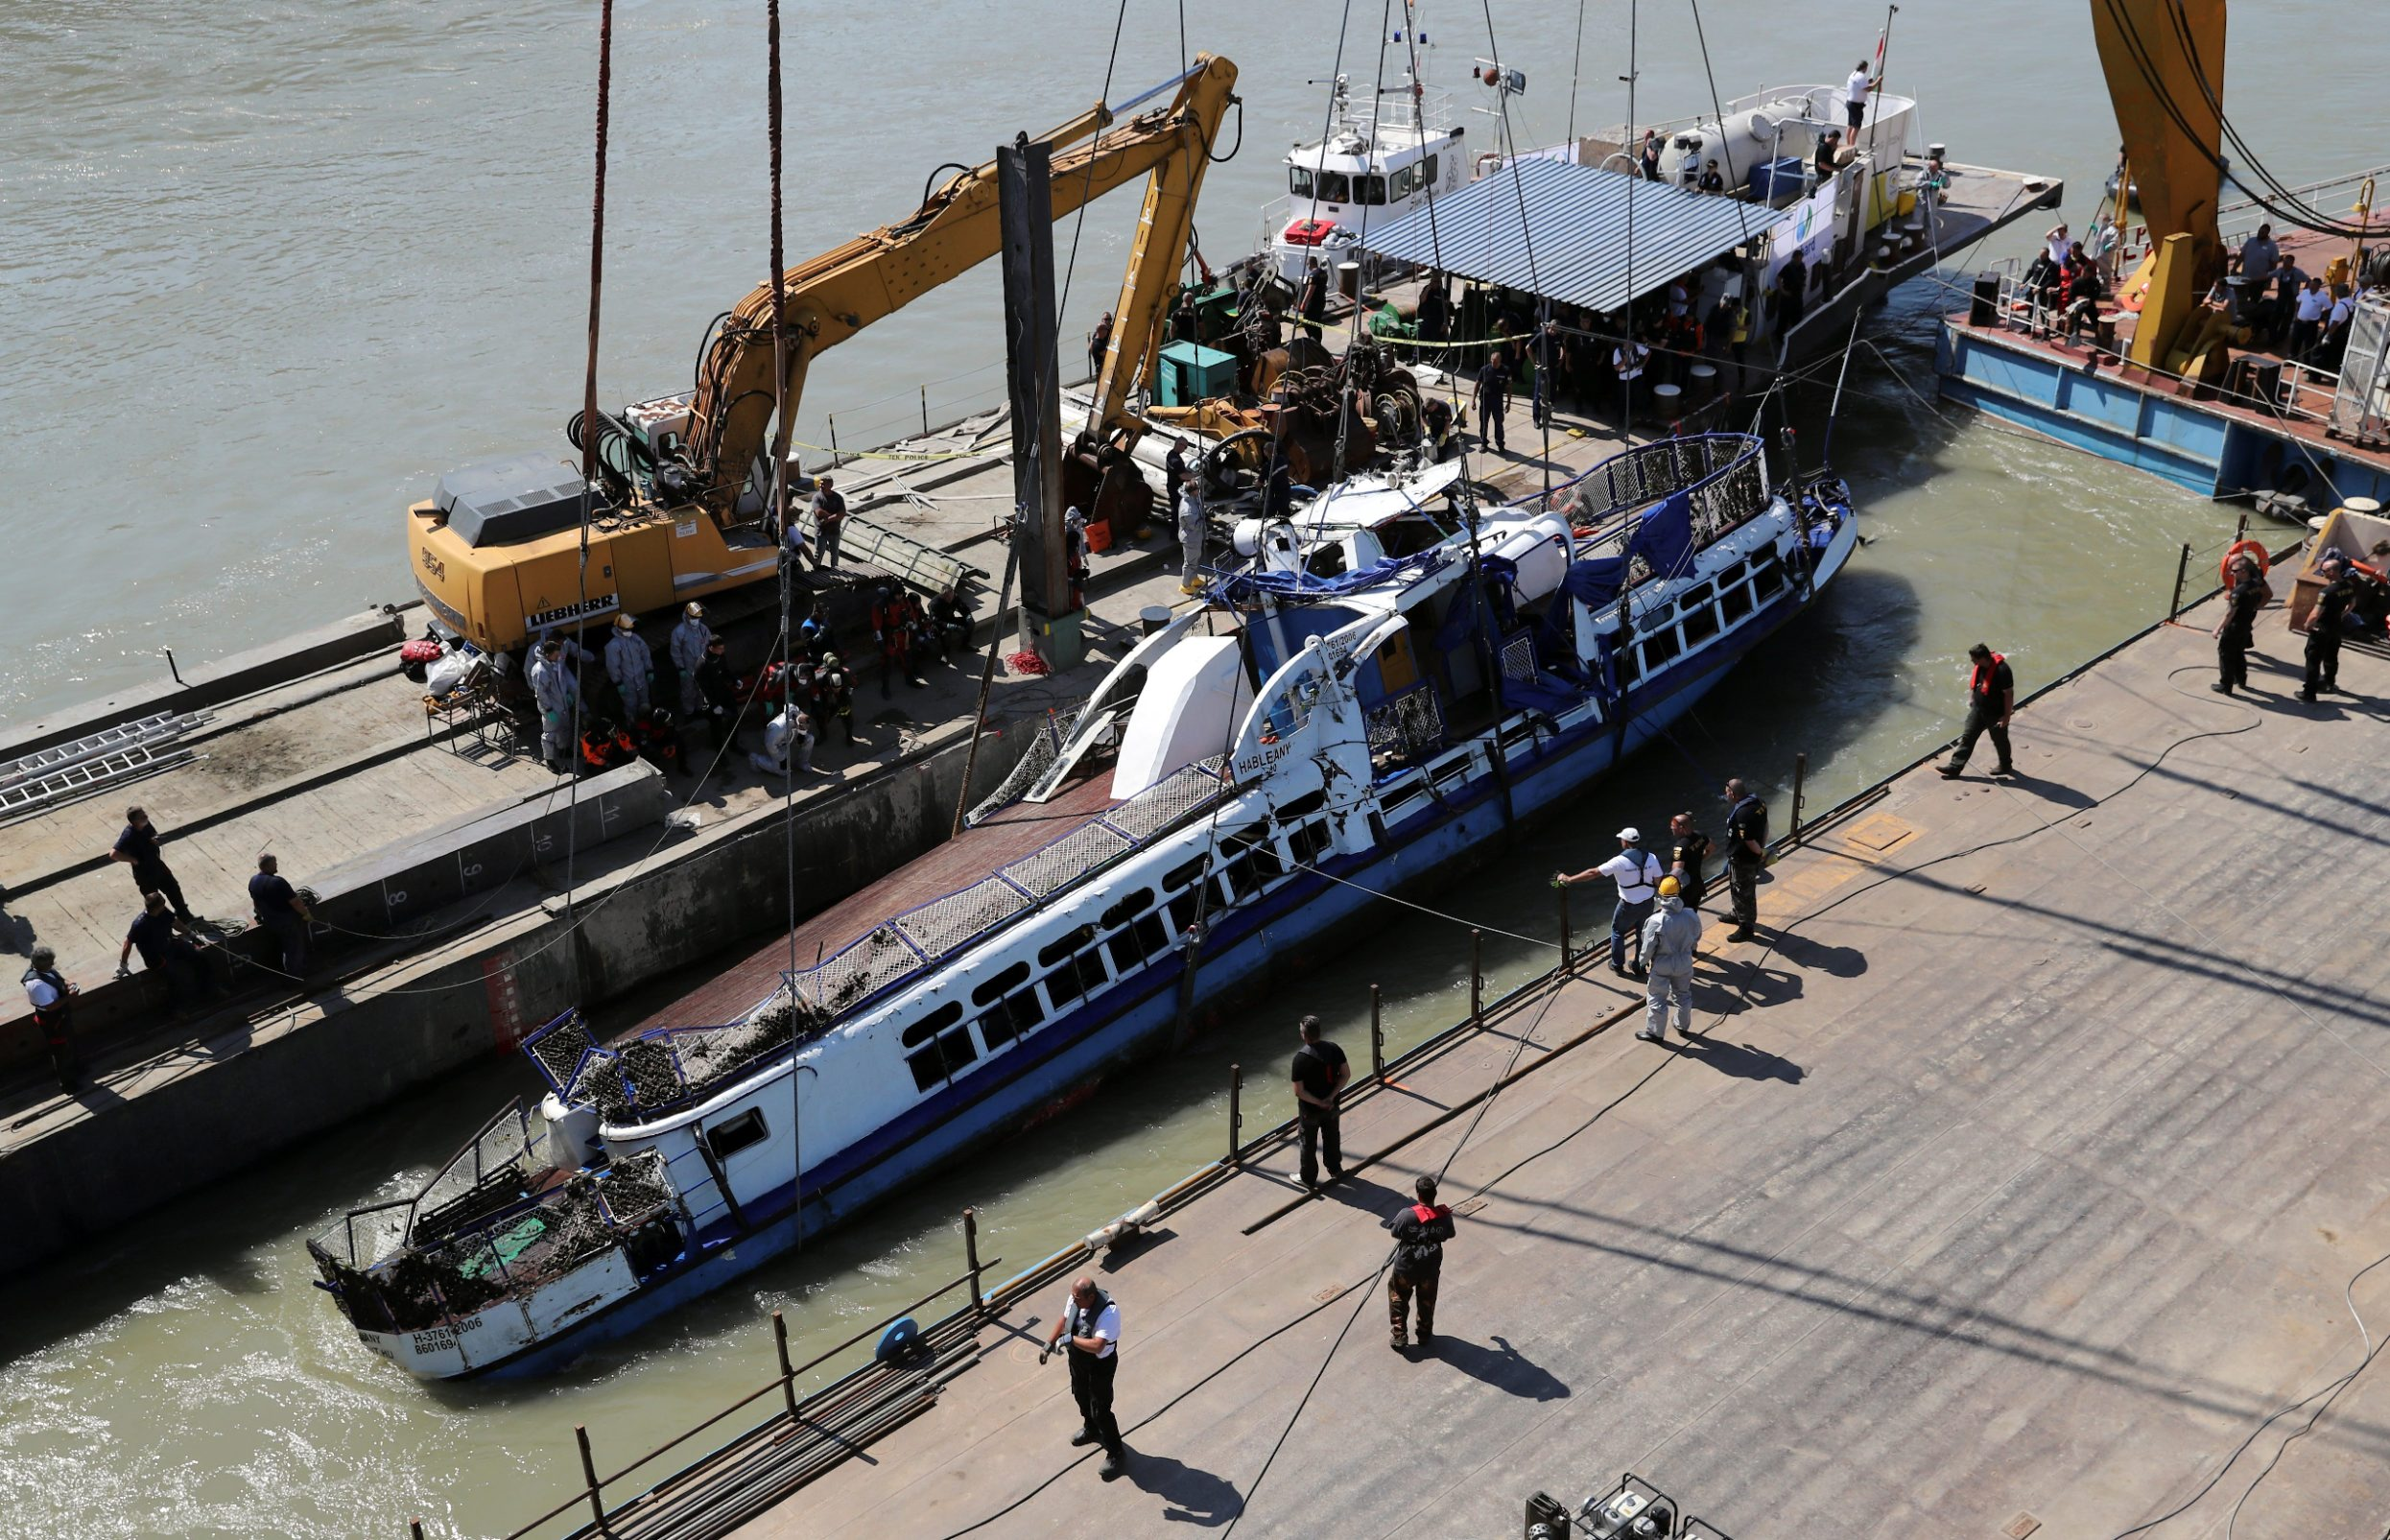 The Mermaid, a Hungarian boat which sank in the Danube river near Margaret bridge, is lifted from the water during a salvage operation in Budapest, Hungary June 11, 2019. REUTERS/Marko Djurica